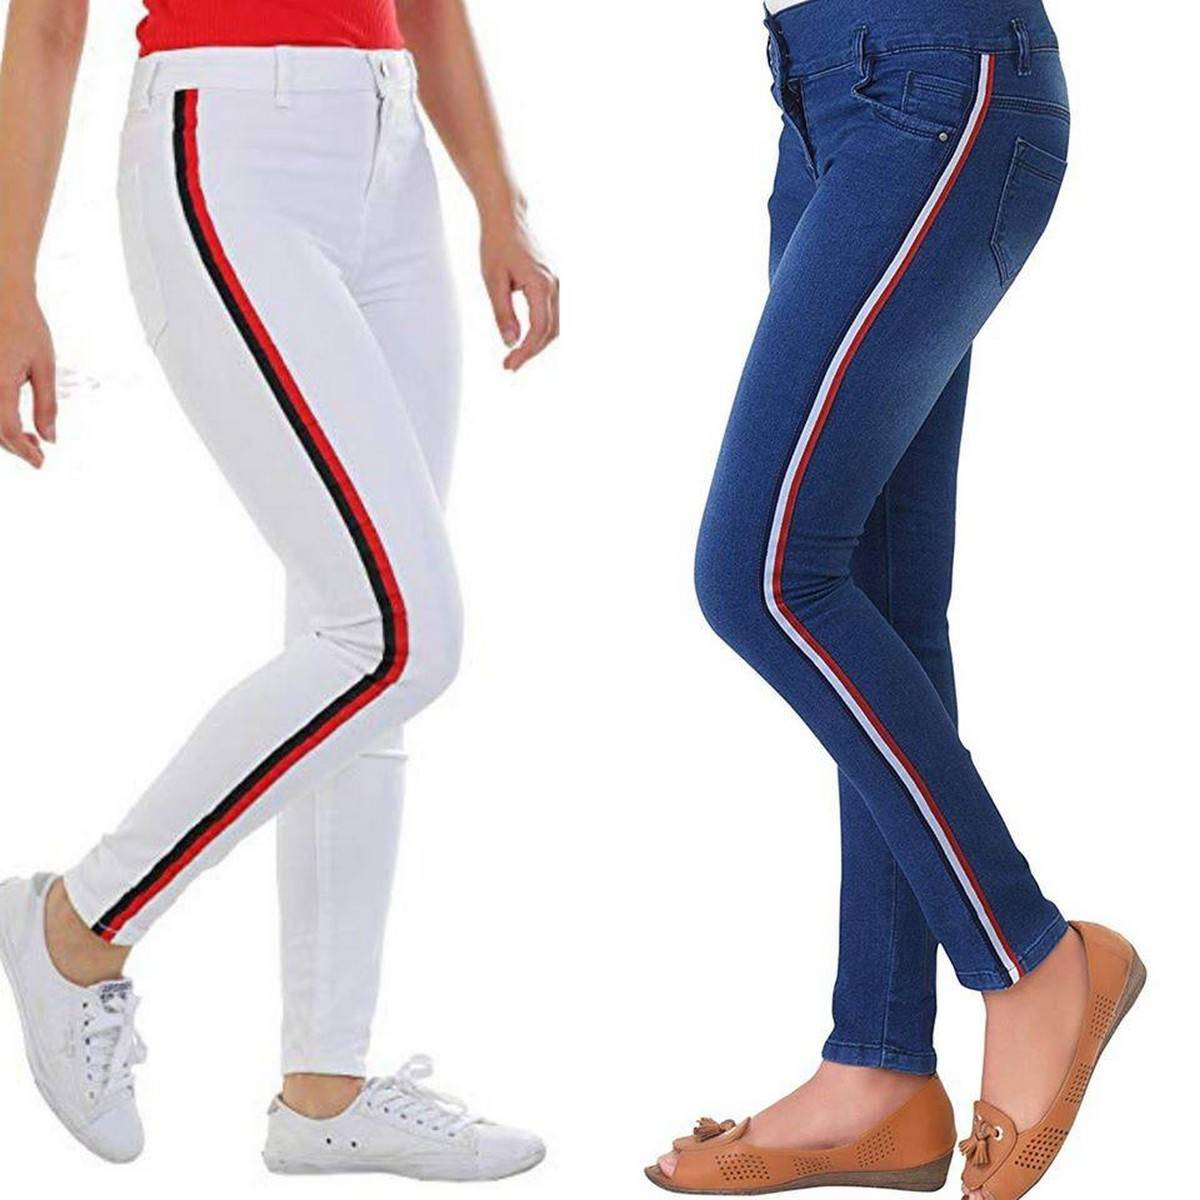 Pack of 2 Slim Fit Strip Denim Stretchable Jeans Pant For Women, Jeans For Girls